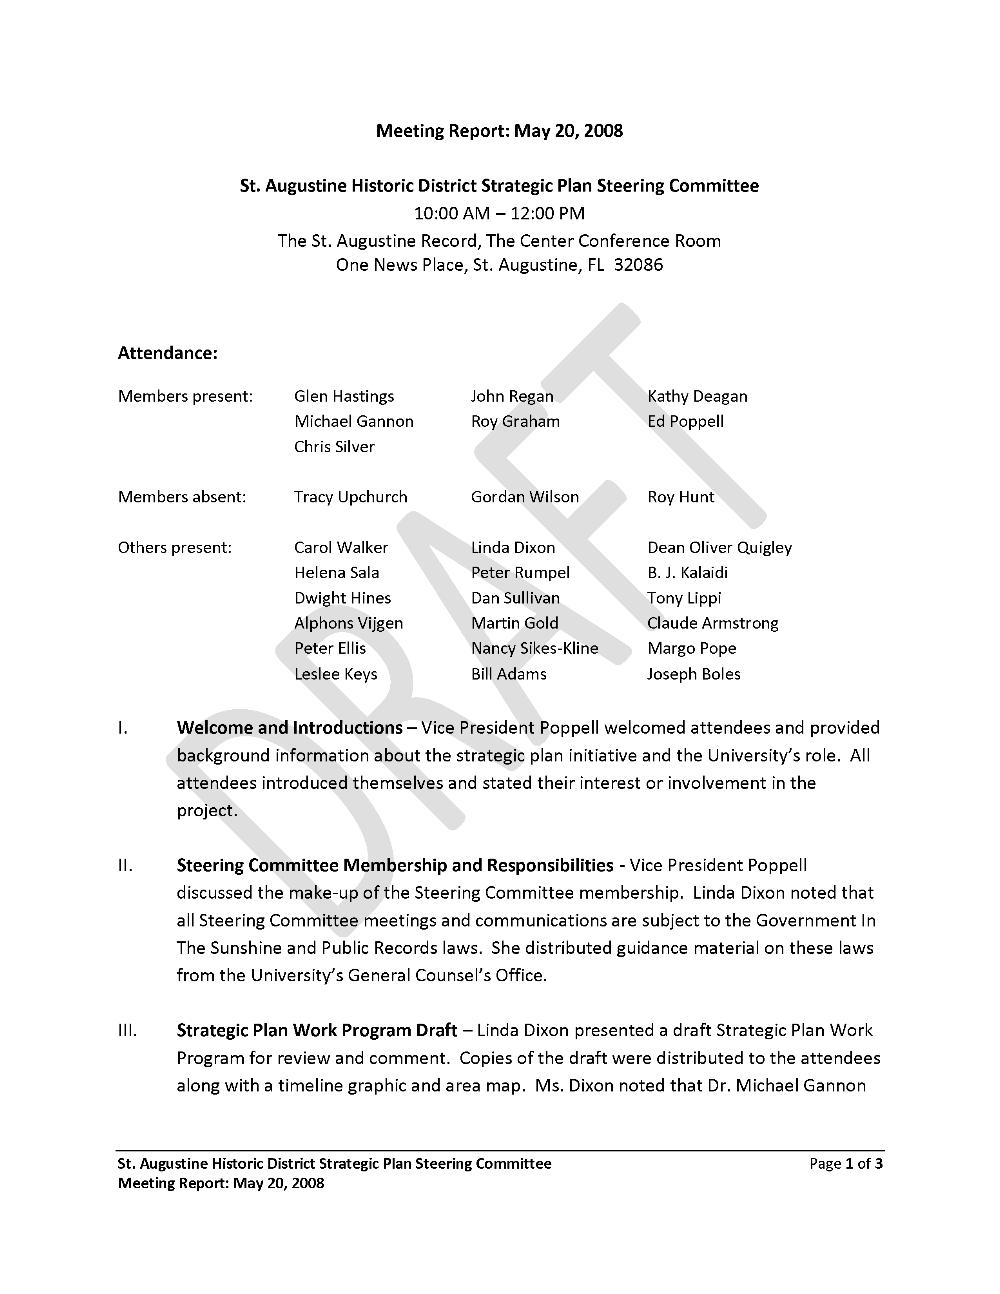 St. Augustine Historic District Strategic Plan Steering Committee meeting report - Page 1